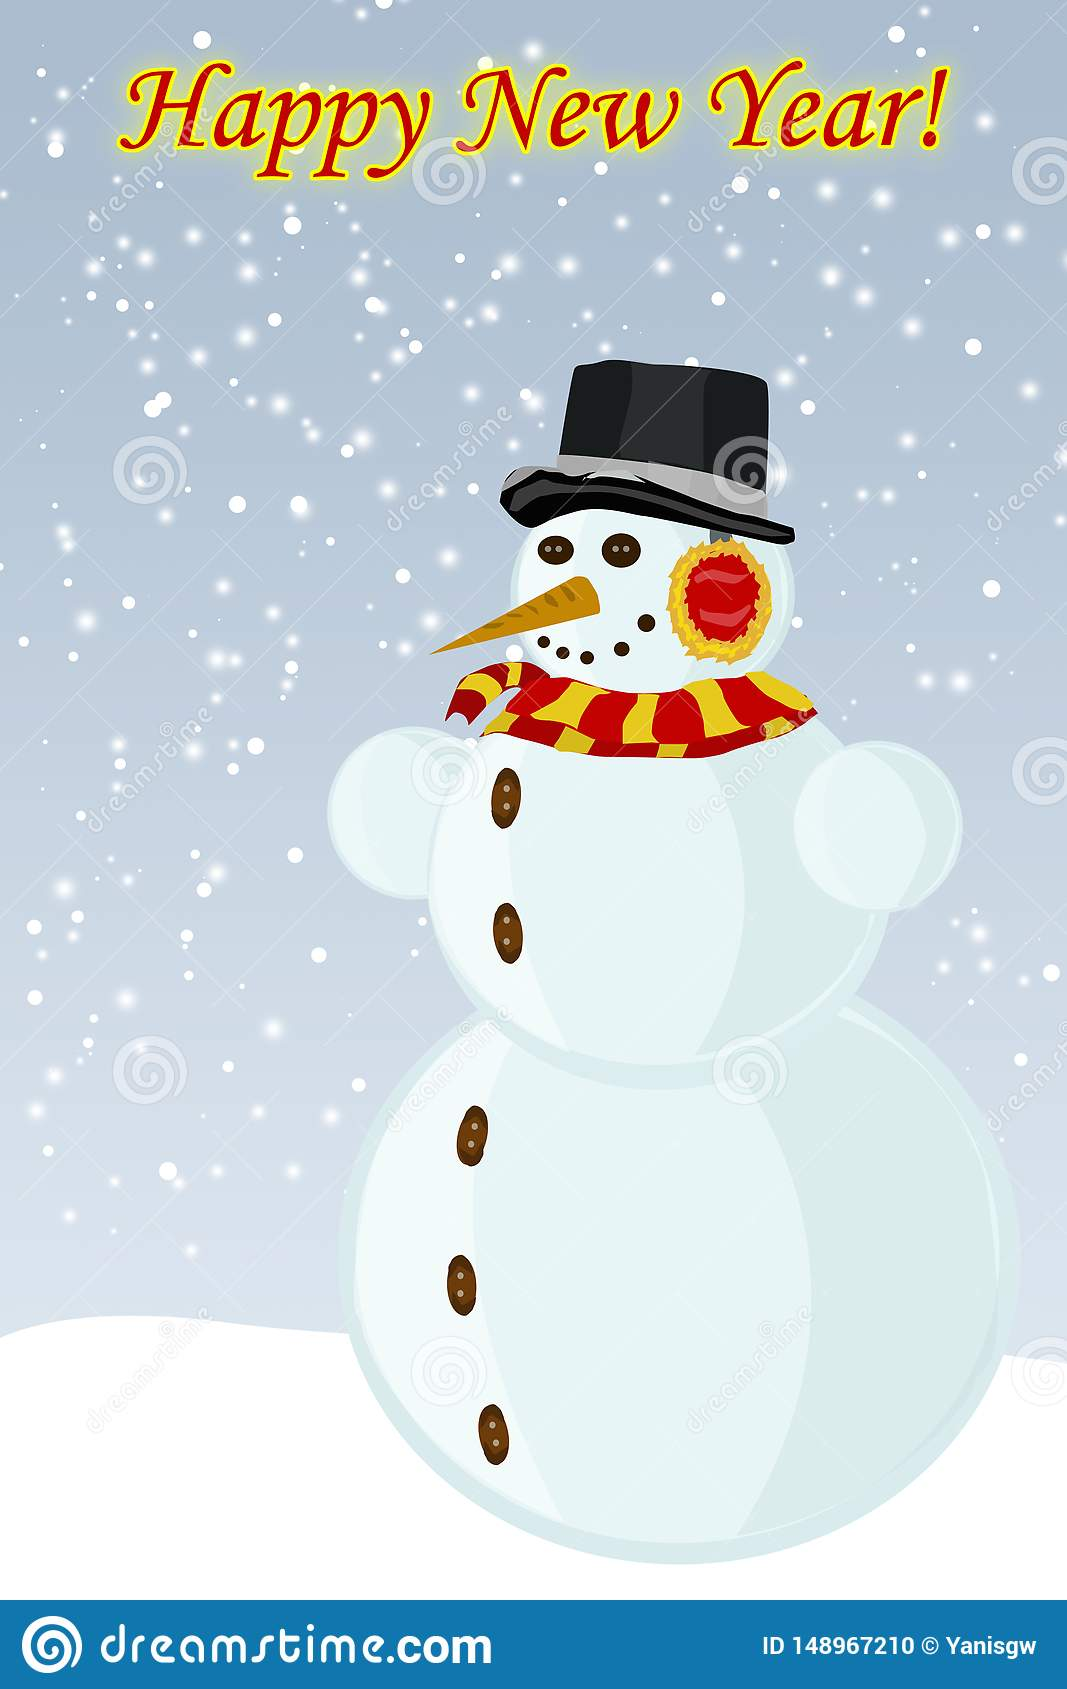 Snowman New Year, the vector image